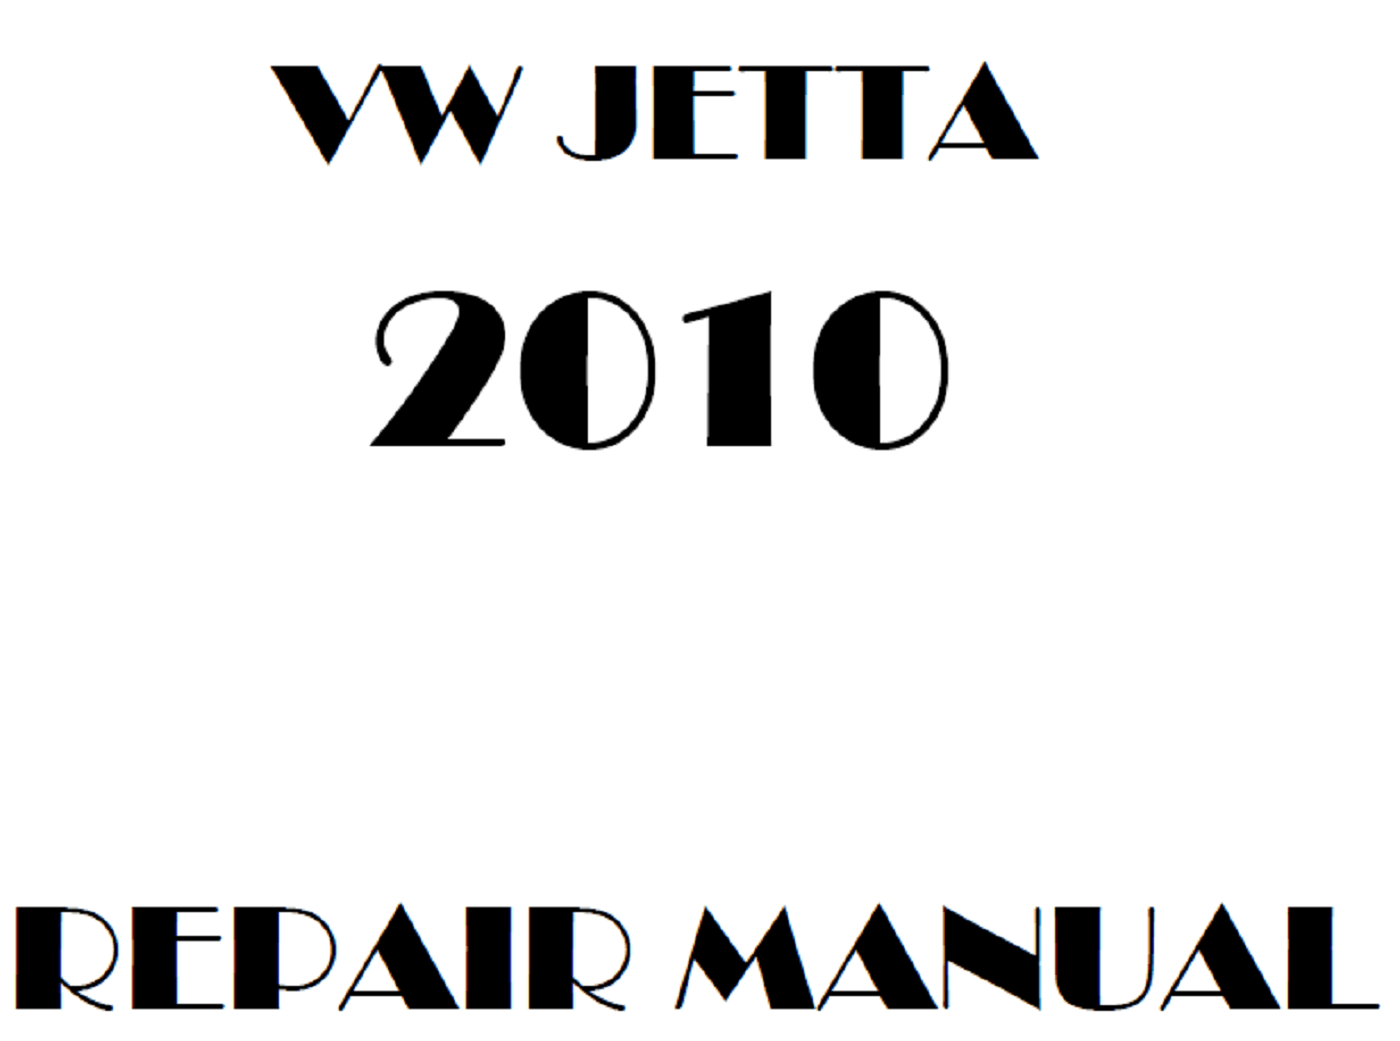 2010 Volkswagen Jetta repair manual